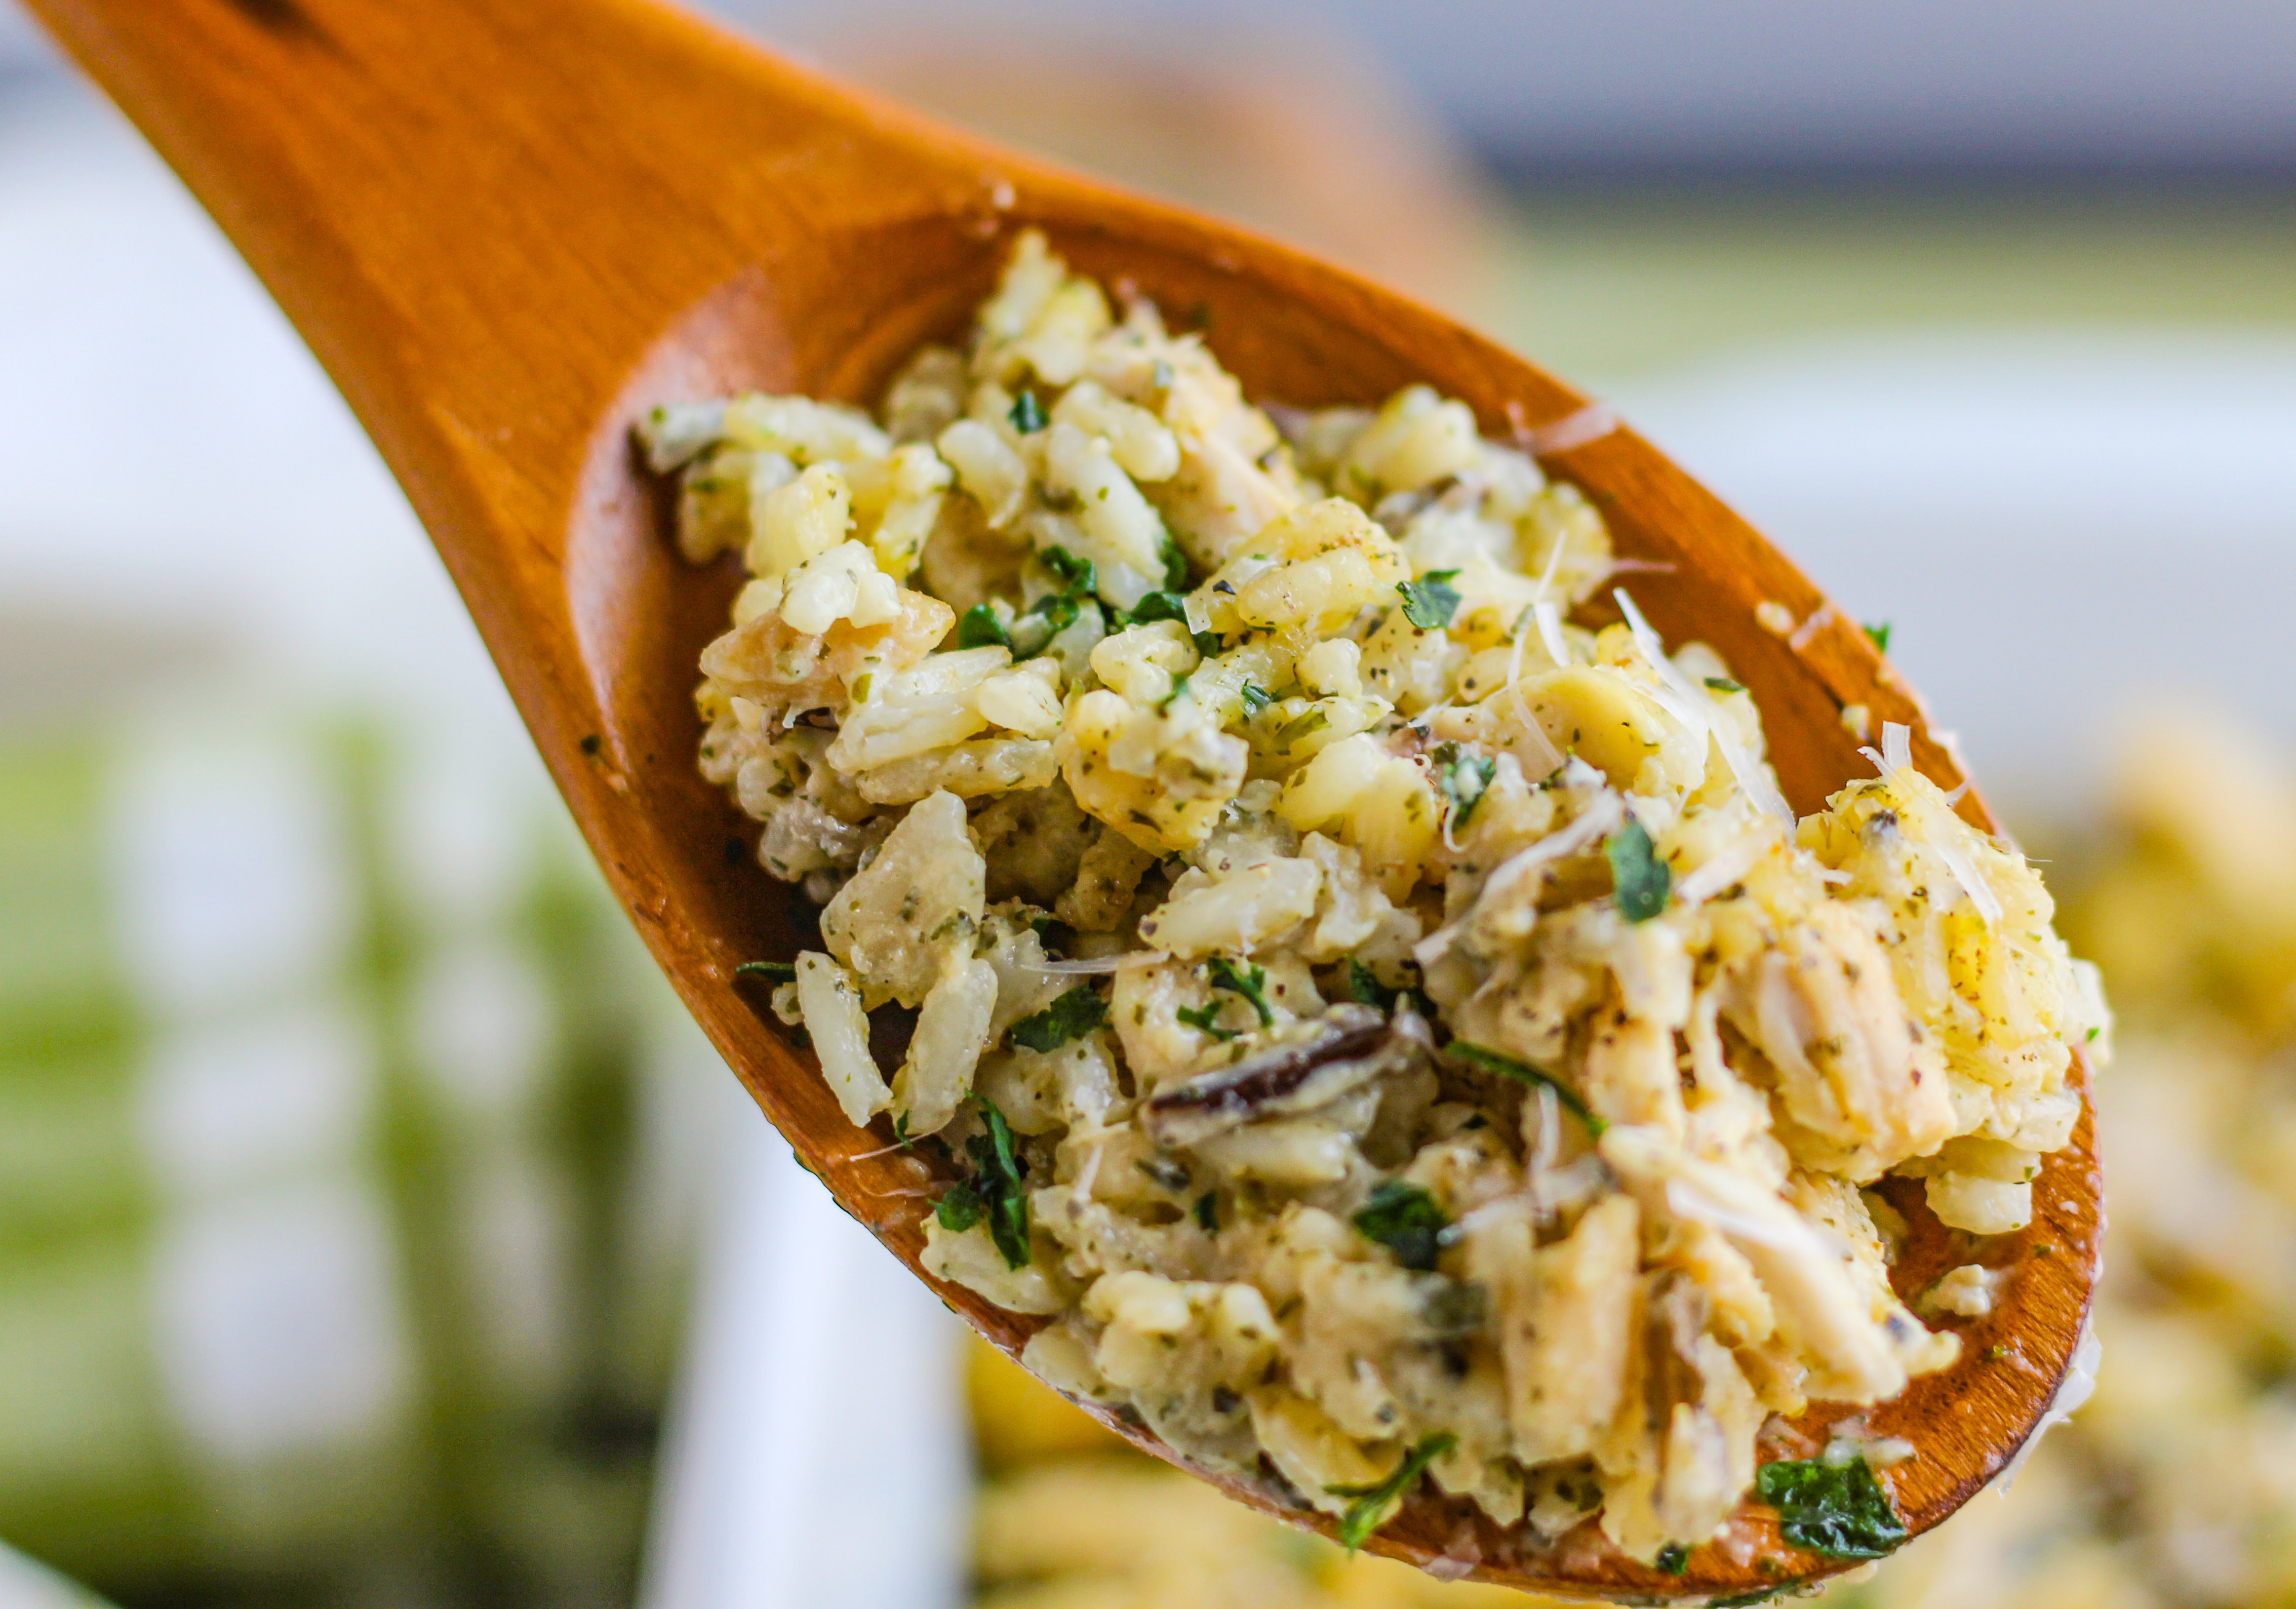 A wooden spoon with a scoop of chicken and rice.